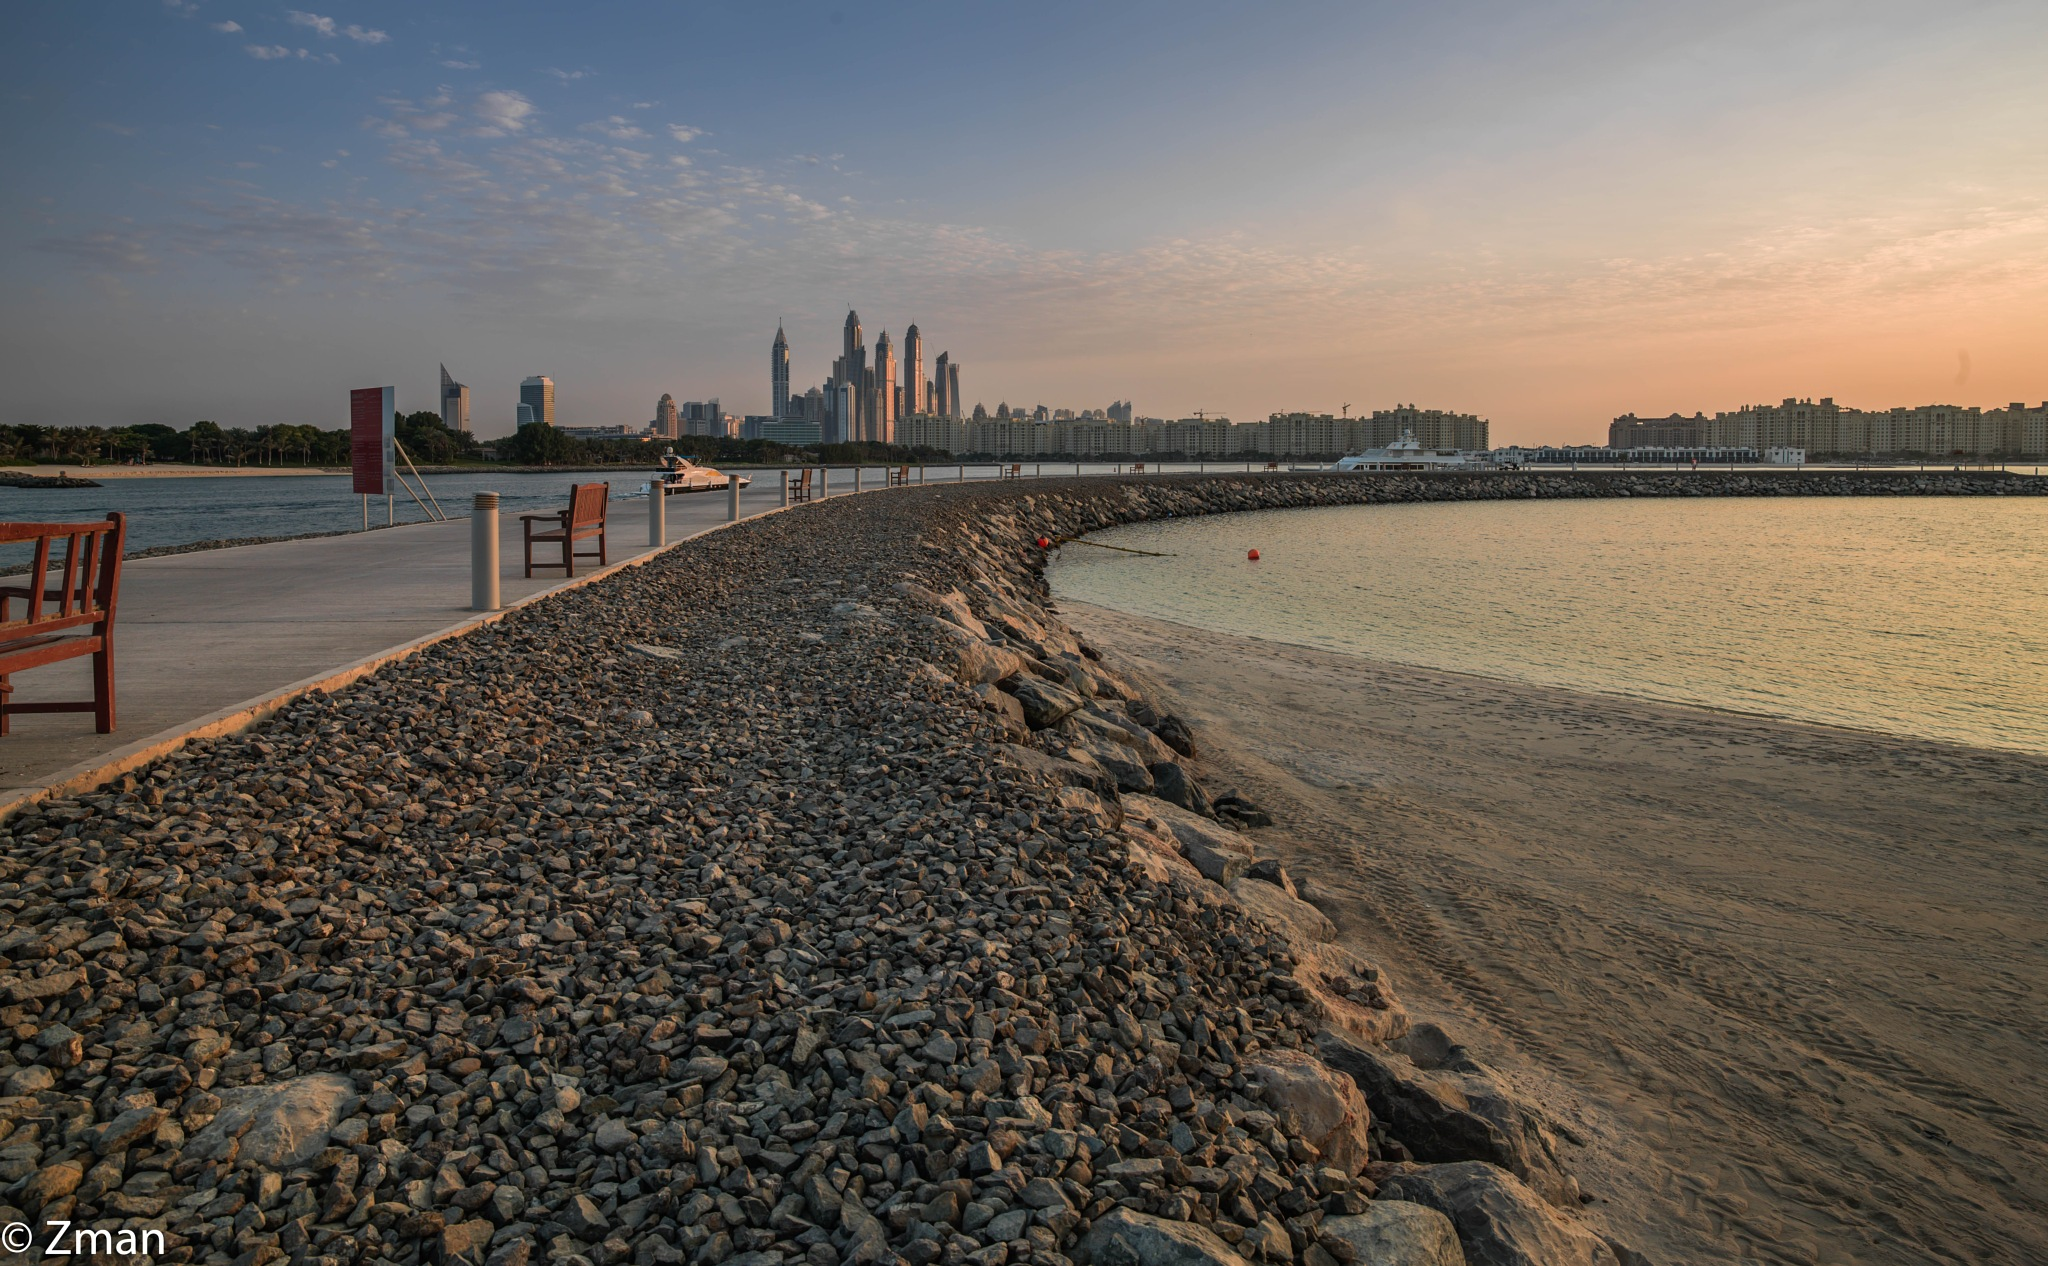 The Breakwater on the Crescent by muhammad.nasser.963